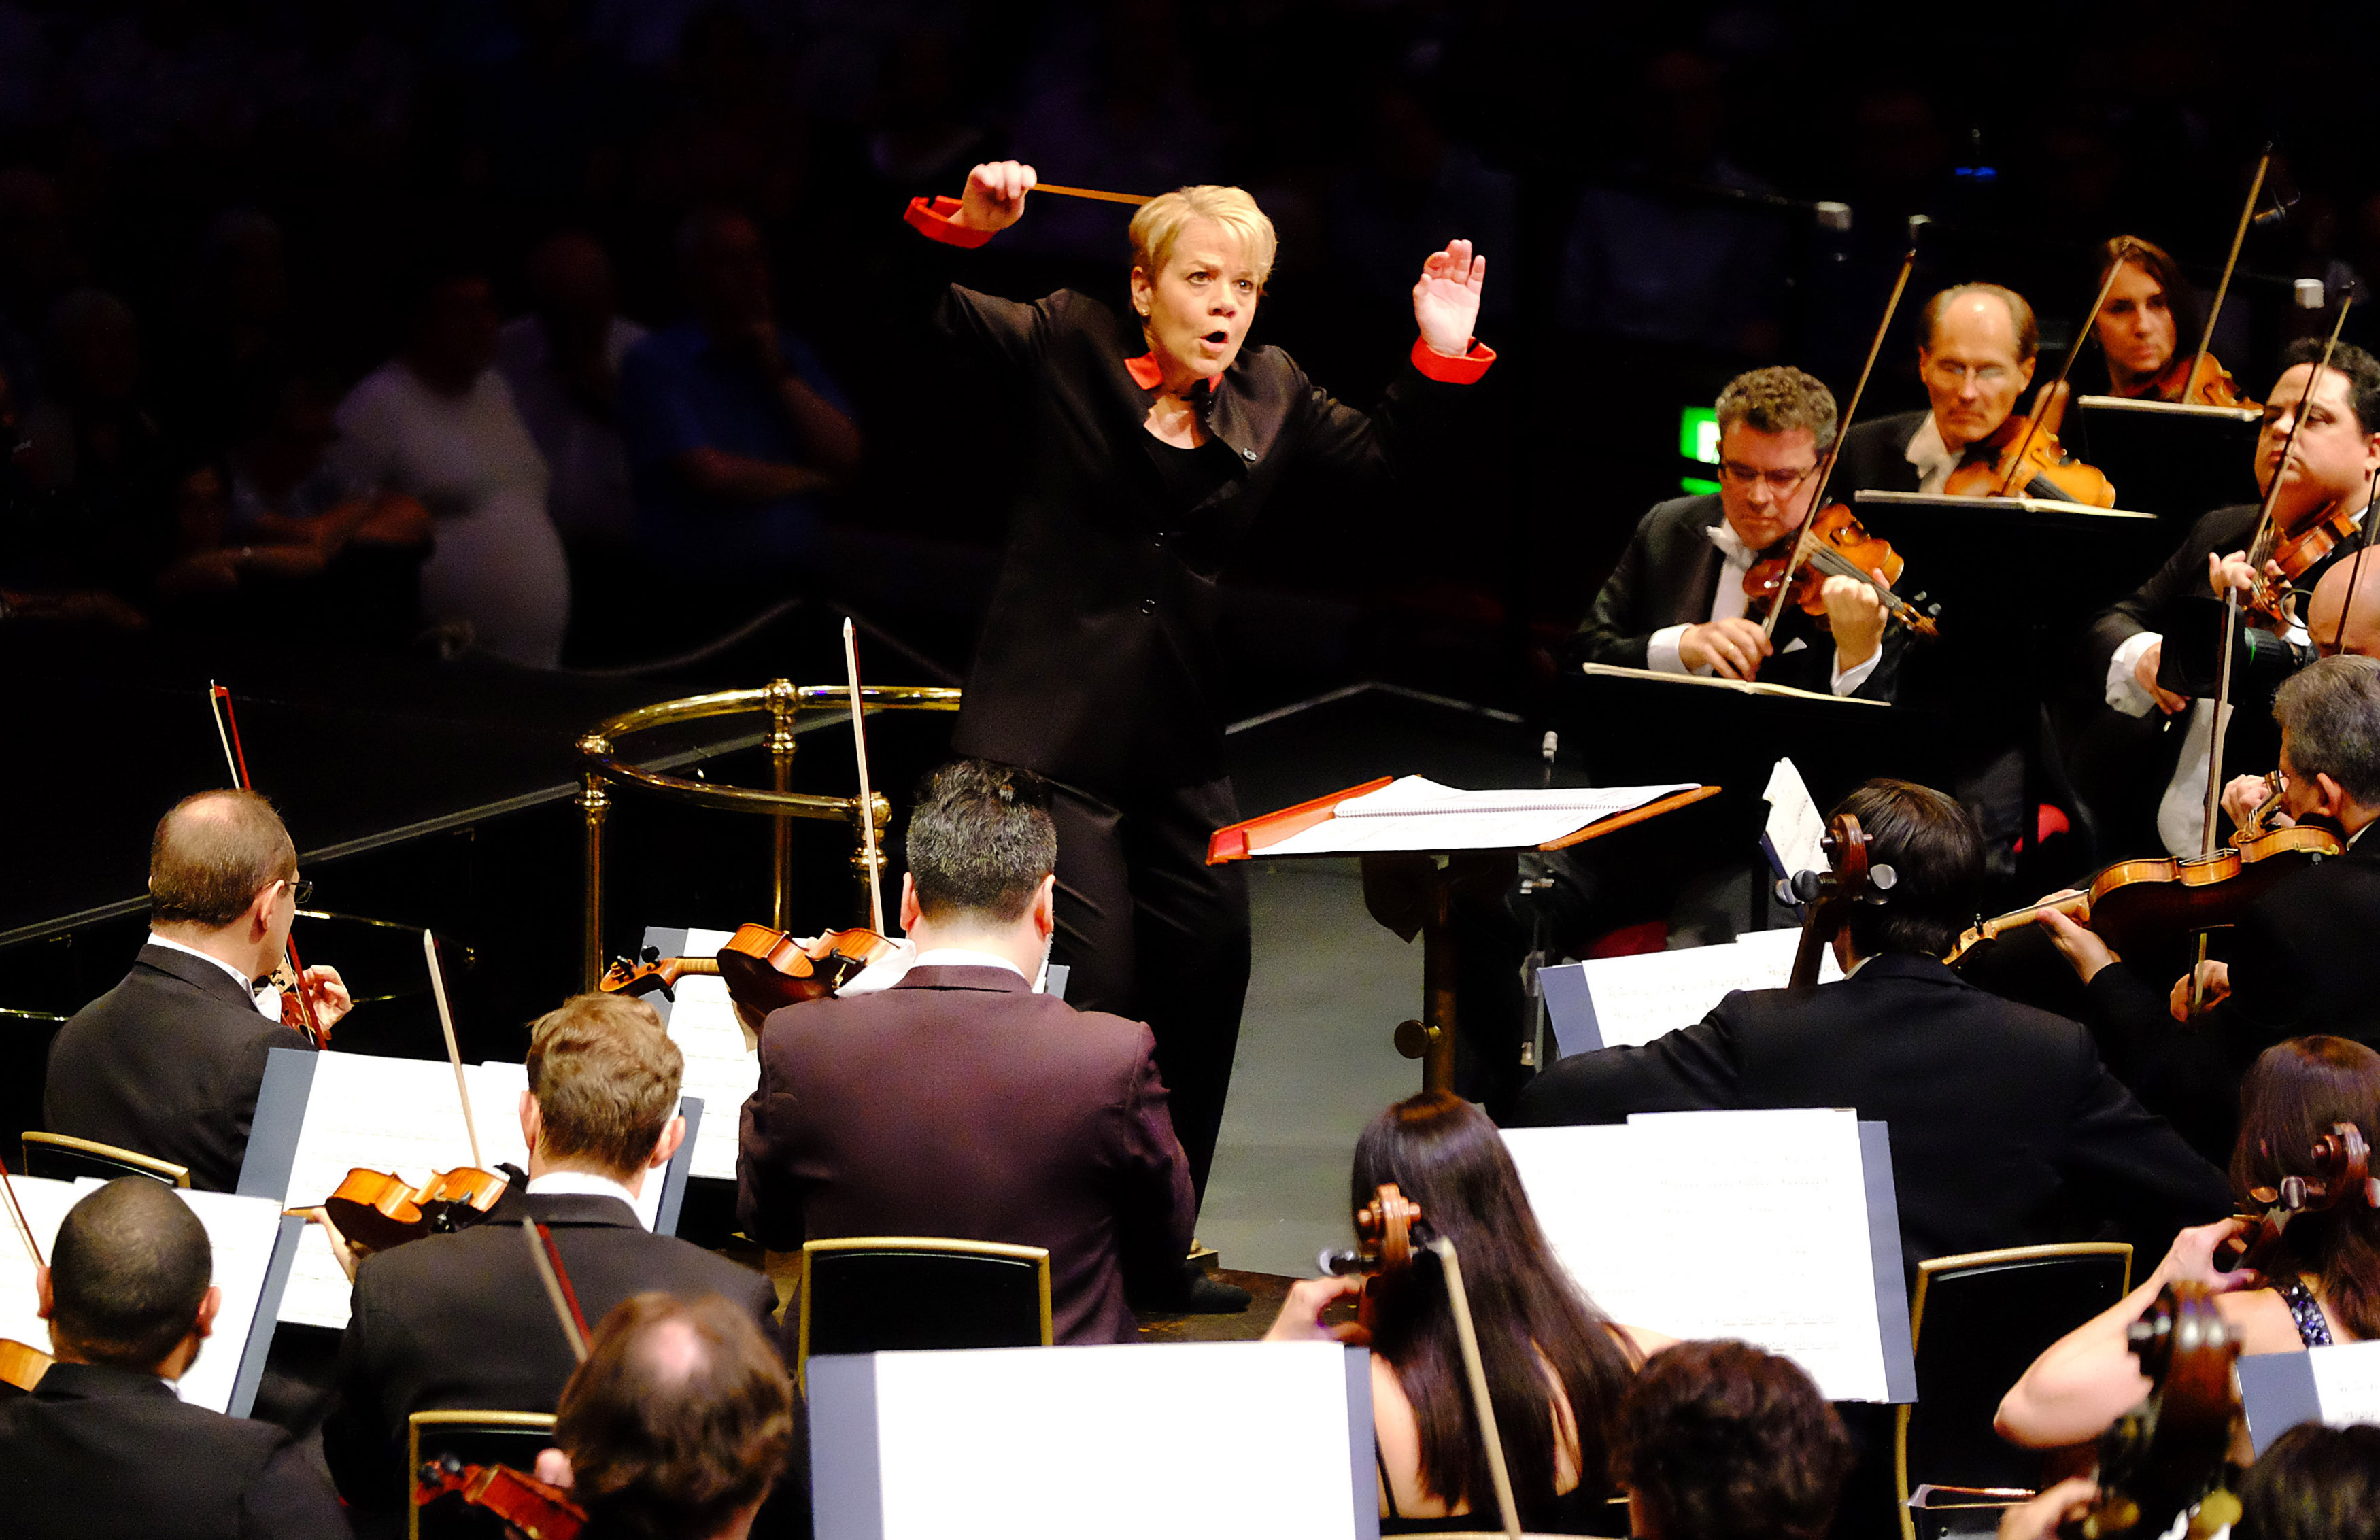 Prom 51: performed by the Sao Paulo Symphony Orchestra, conducted by Marin Alsop with Gabriela Montero on piano, (Marlos Nobre: Kabbalah-UK Premiere, Grieg: Piano Concerto in A Minor, Villa-Lobos: Bachianas brasileiras No. 4-Prelude, Rachmaninov: Symphonic Dances) at the Royal Albert Hall on 24th August 2016. Photo by Mark Allan/BBC.